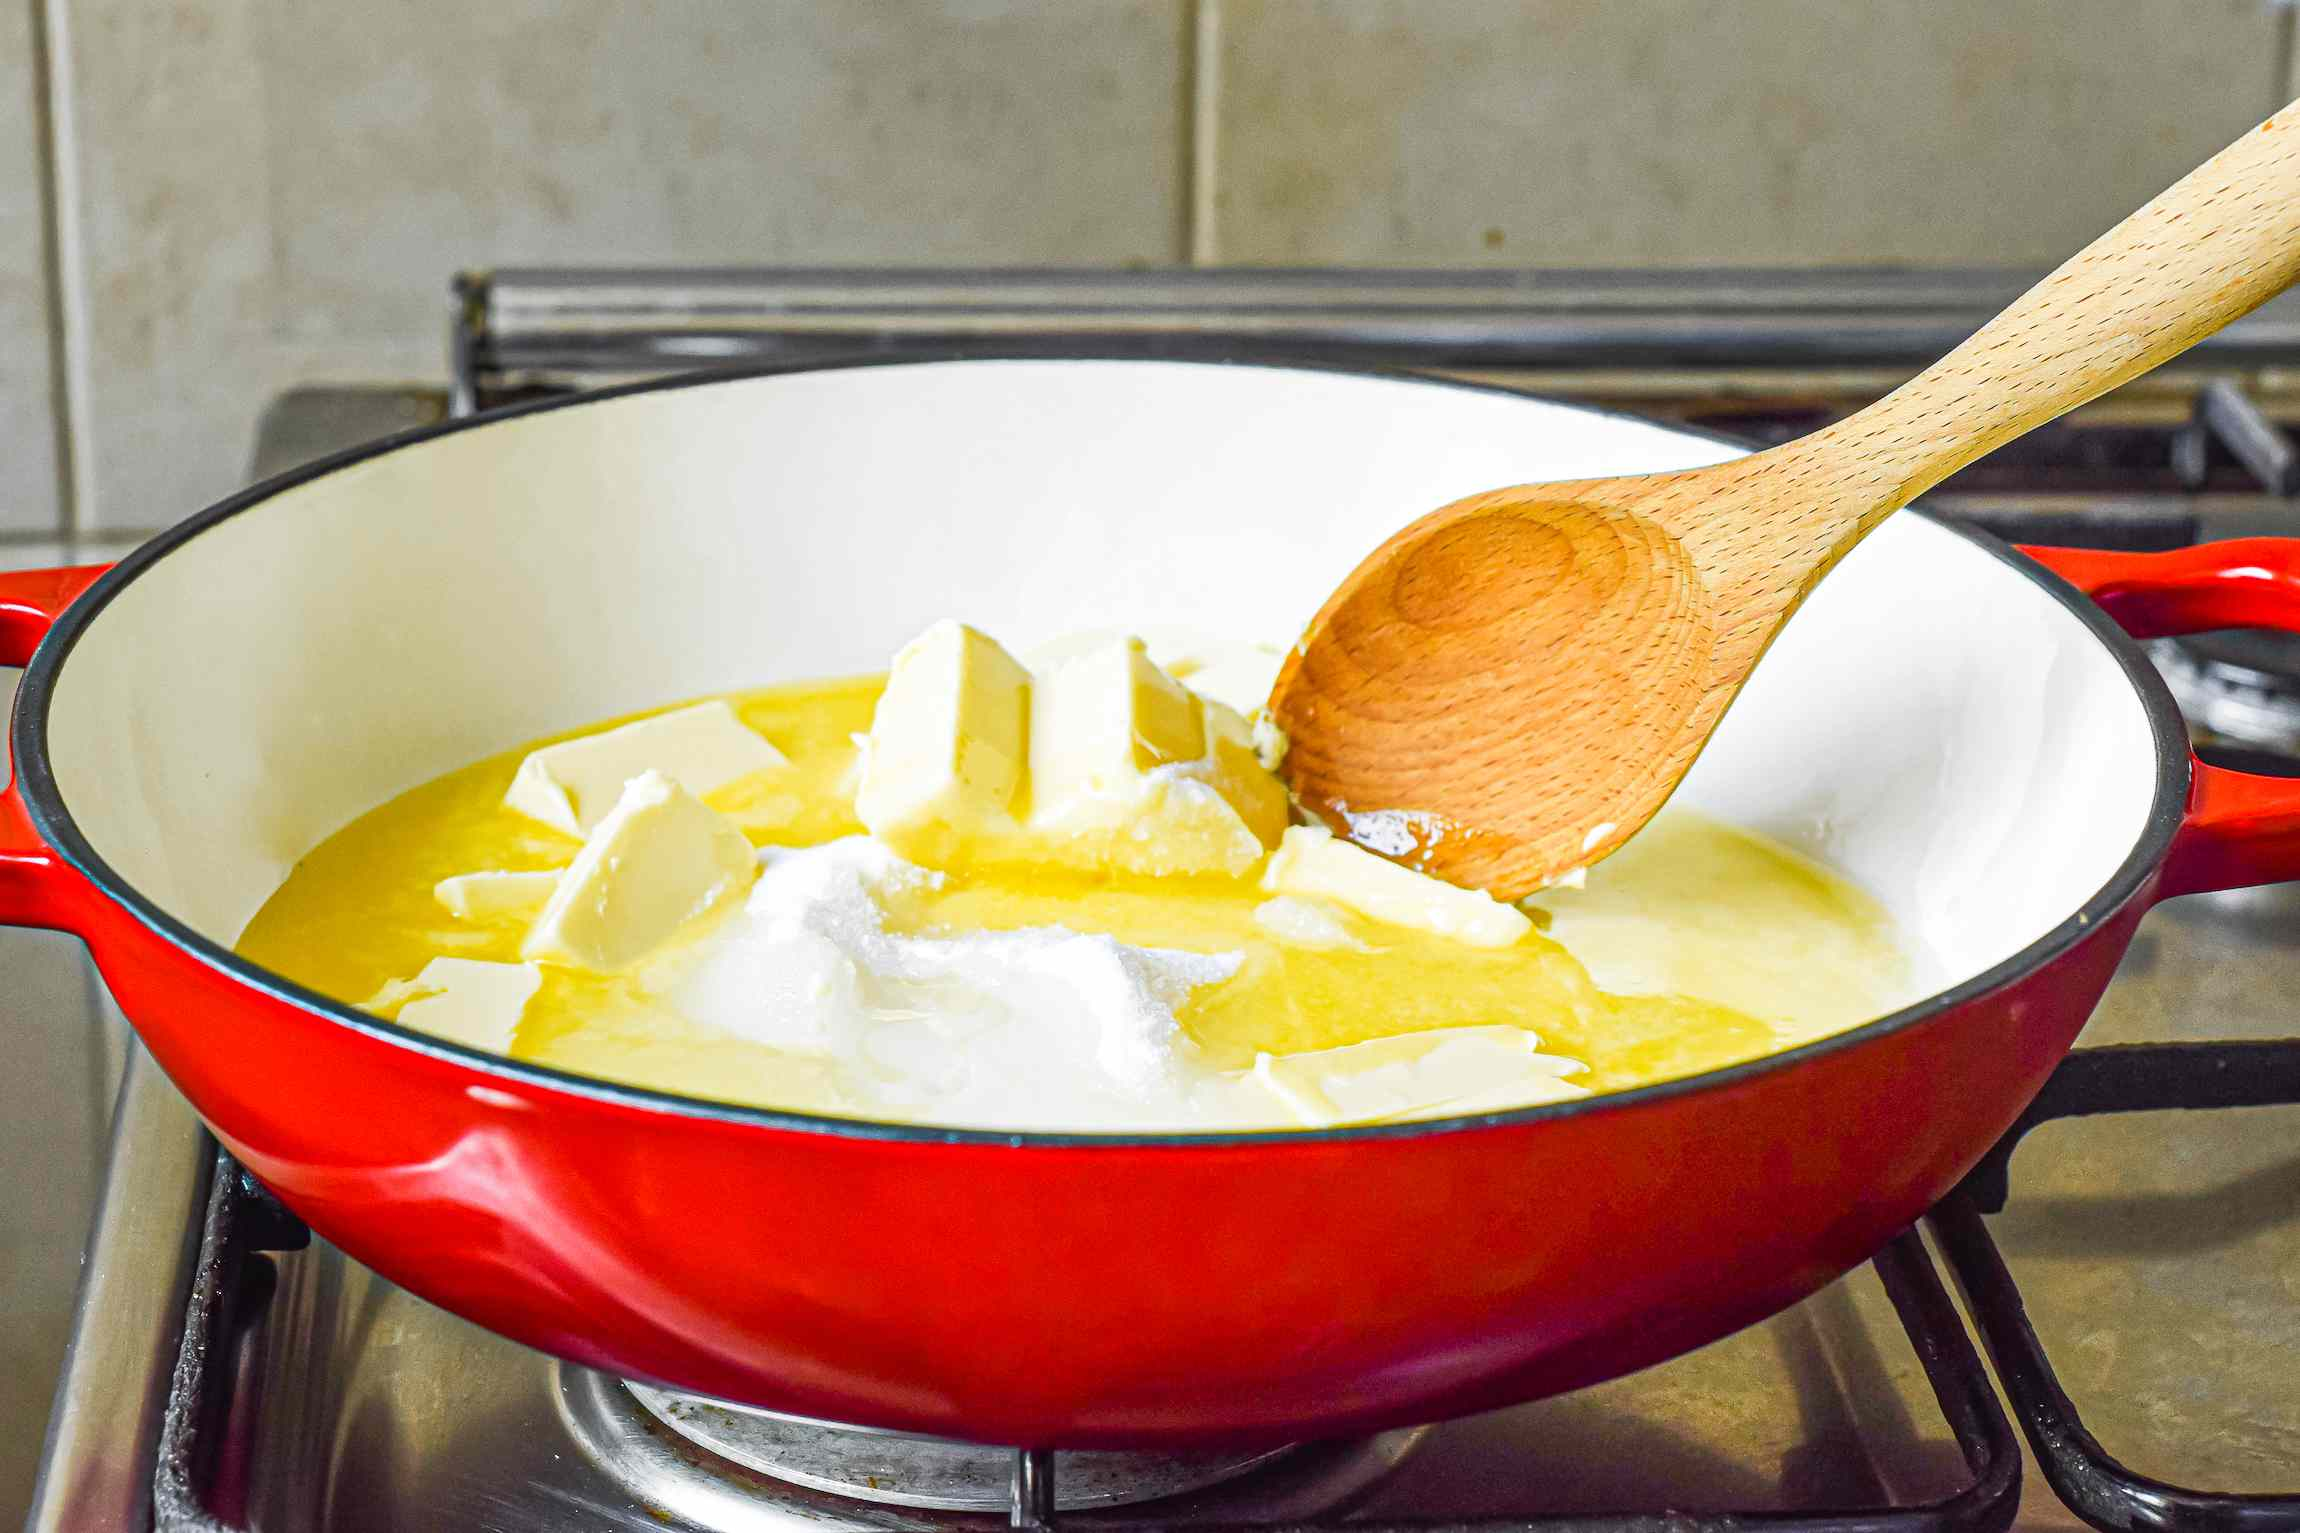 Melting butter in a red pan to make almond roca recipe.